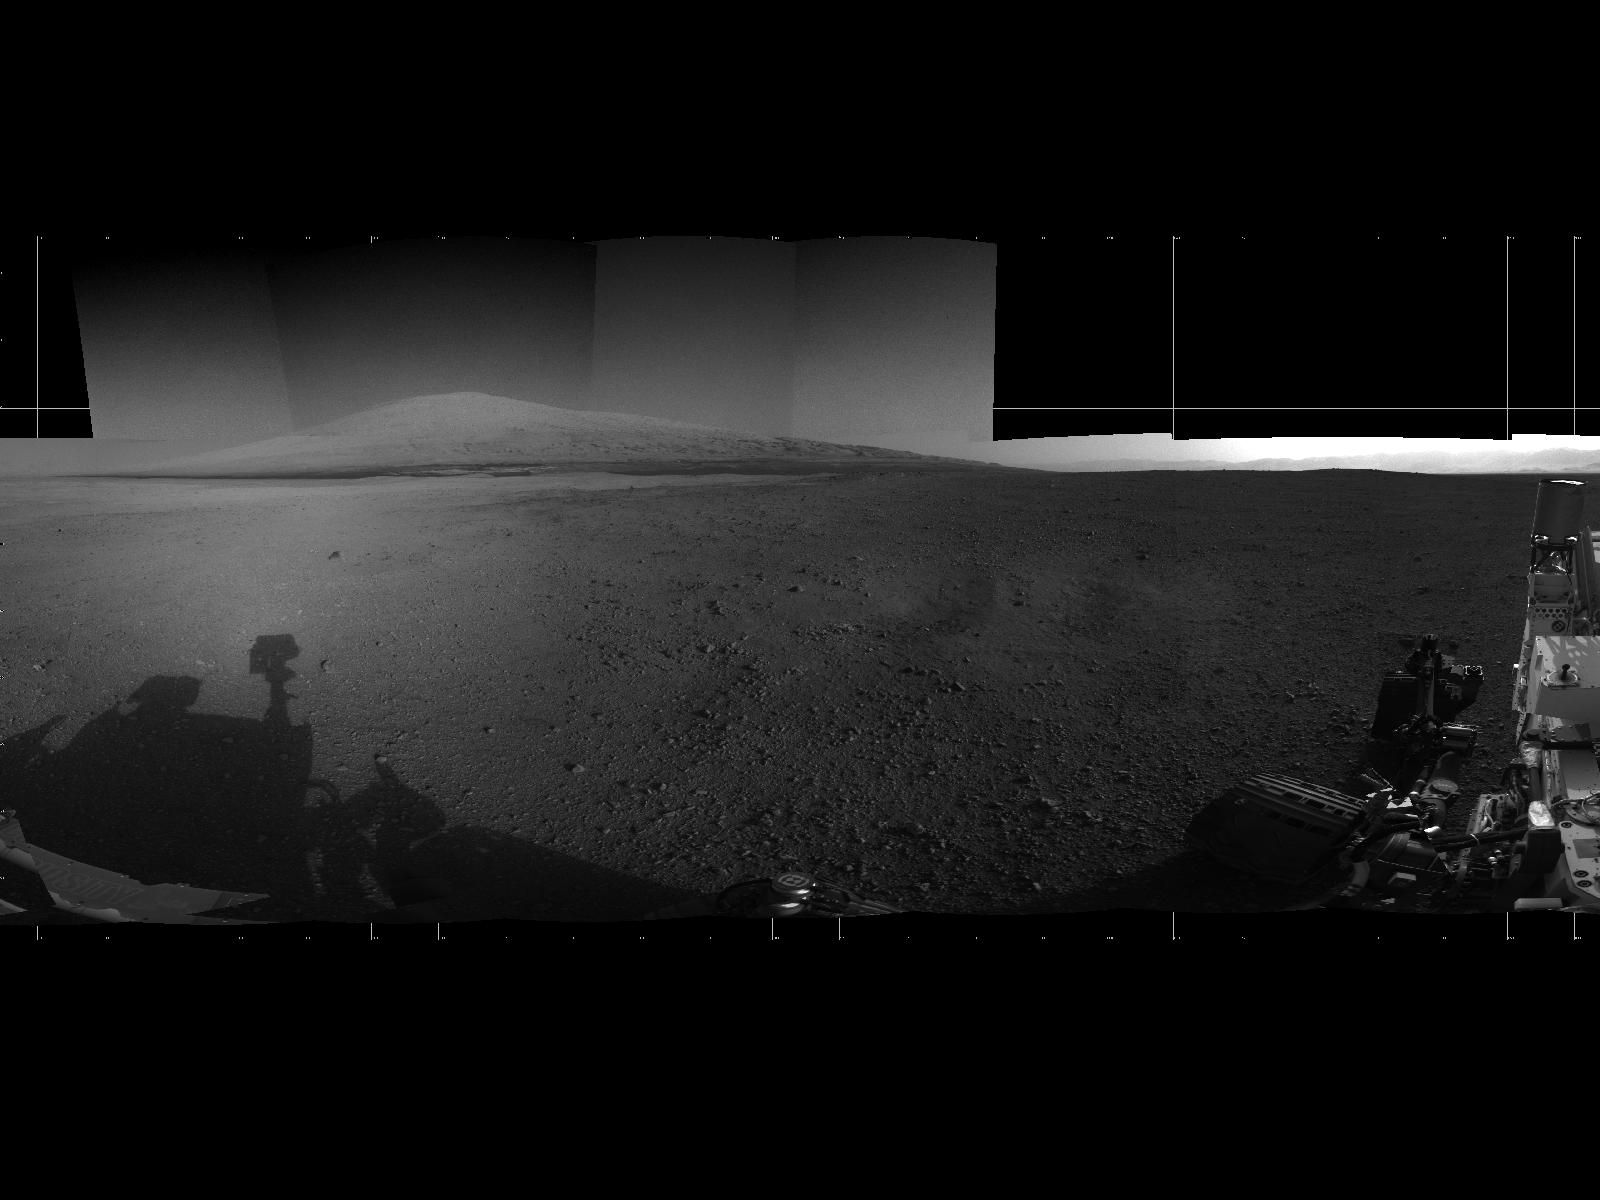 Mount Sharp on Mars: Curiosity Rover's Panoramic View (Photo)